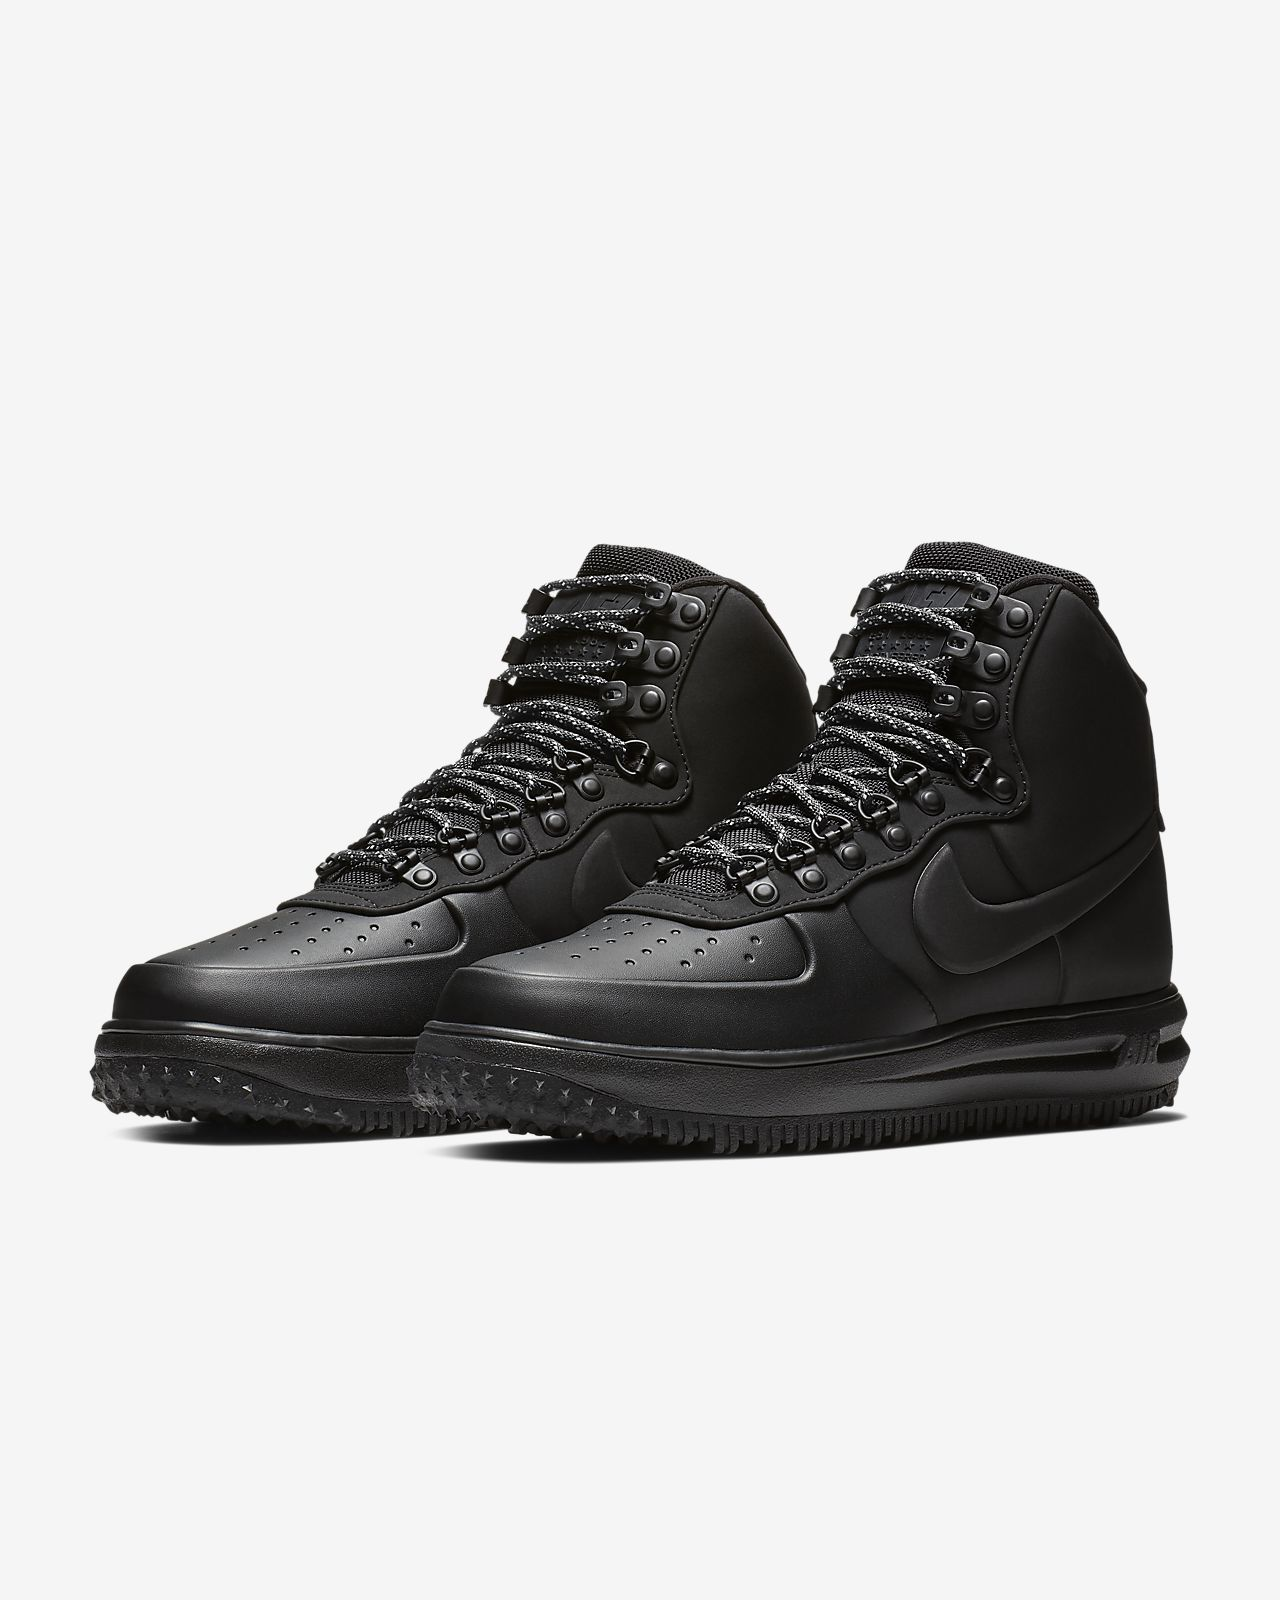 Nike Air Max 90, Nike Air Force 1 (Duckboot, Lunar), Nike